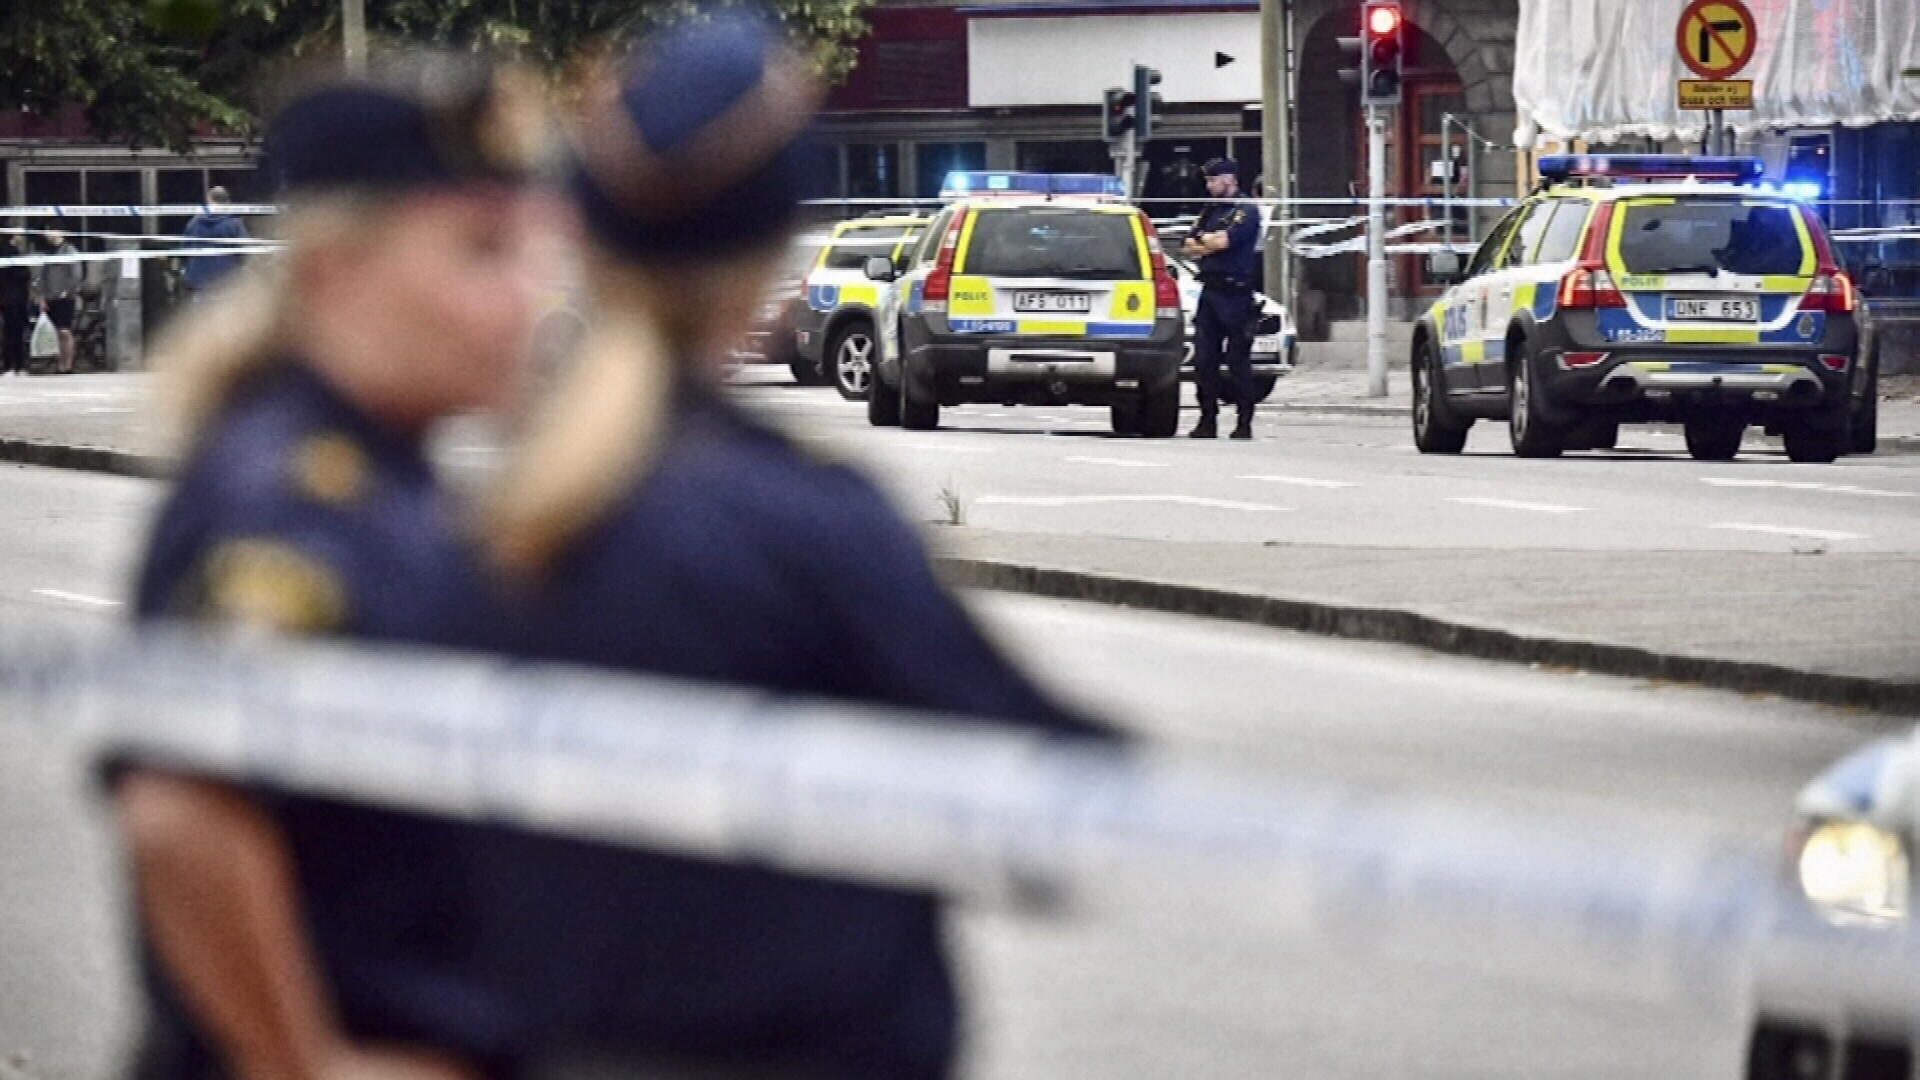 Two dead in shooting in Sweden